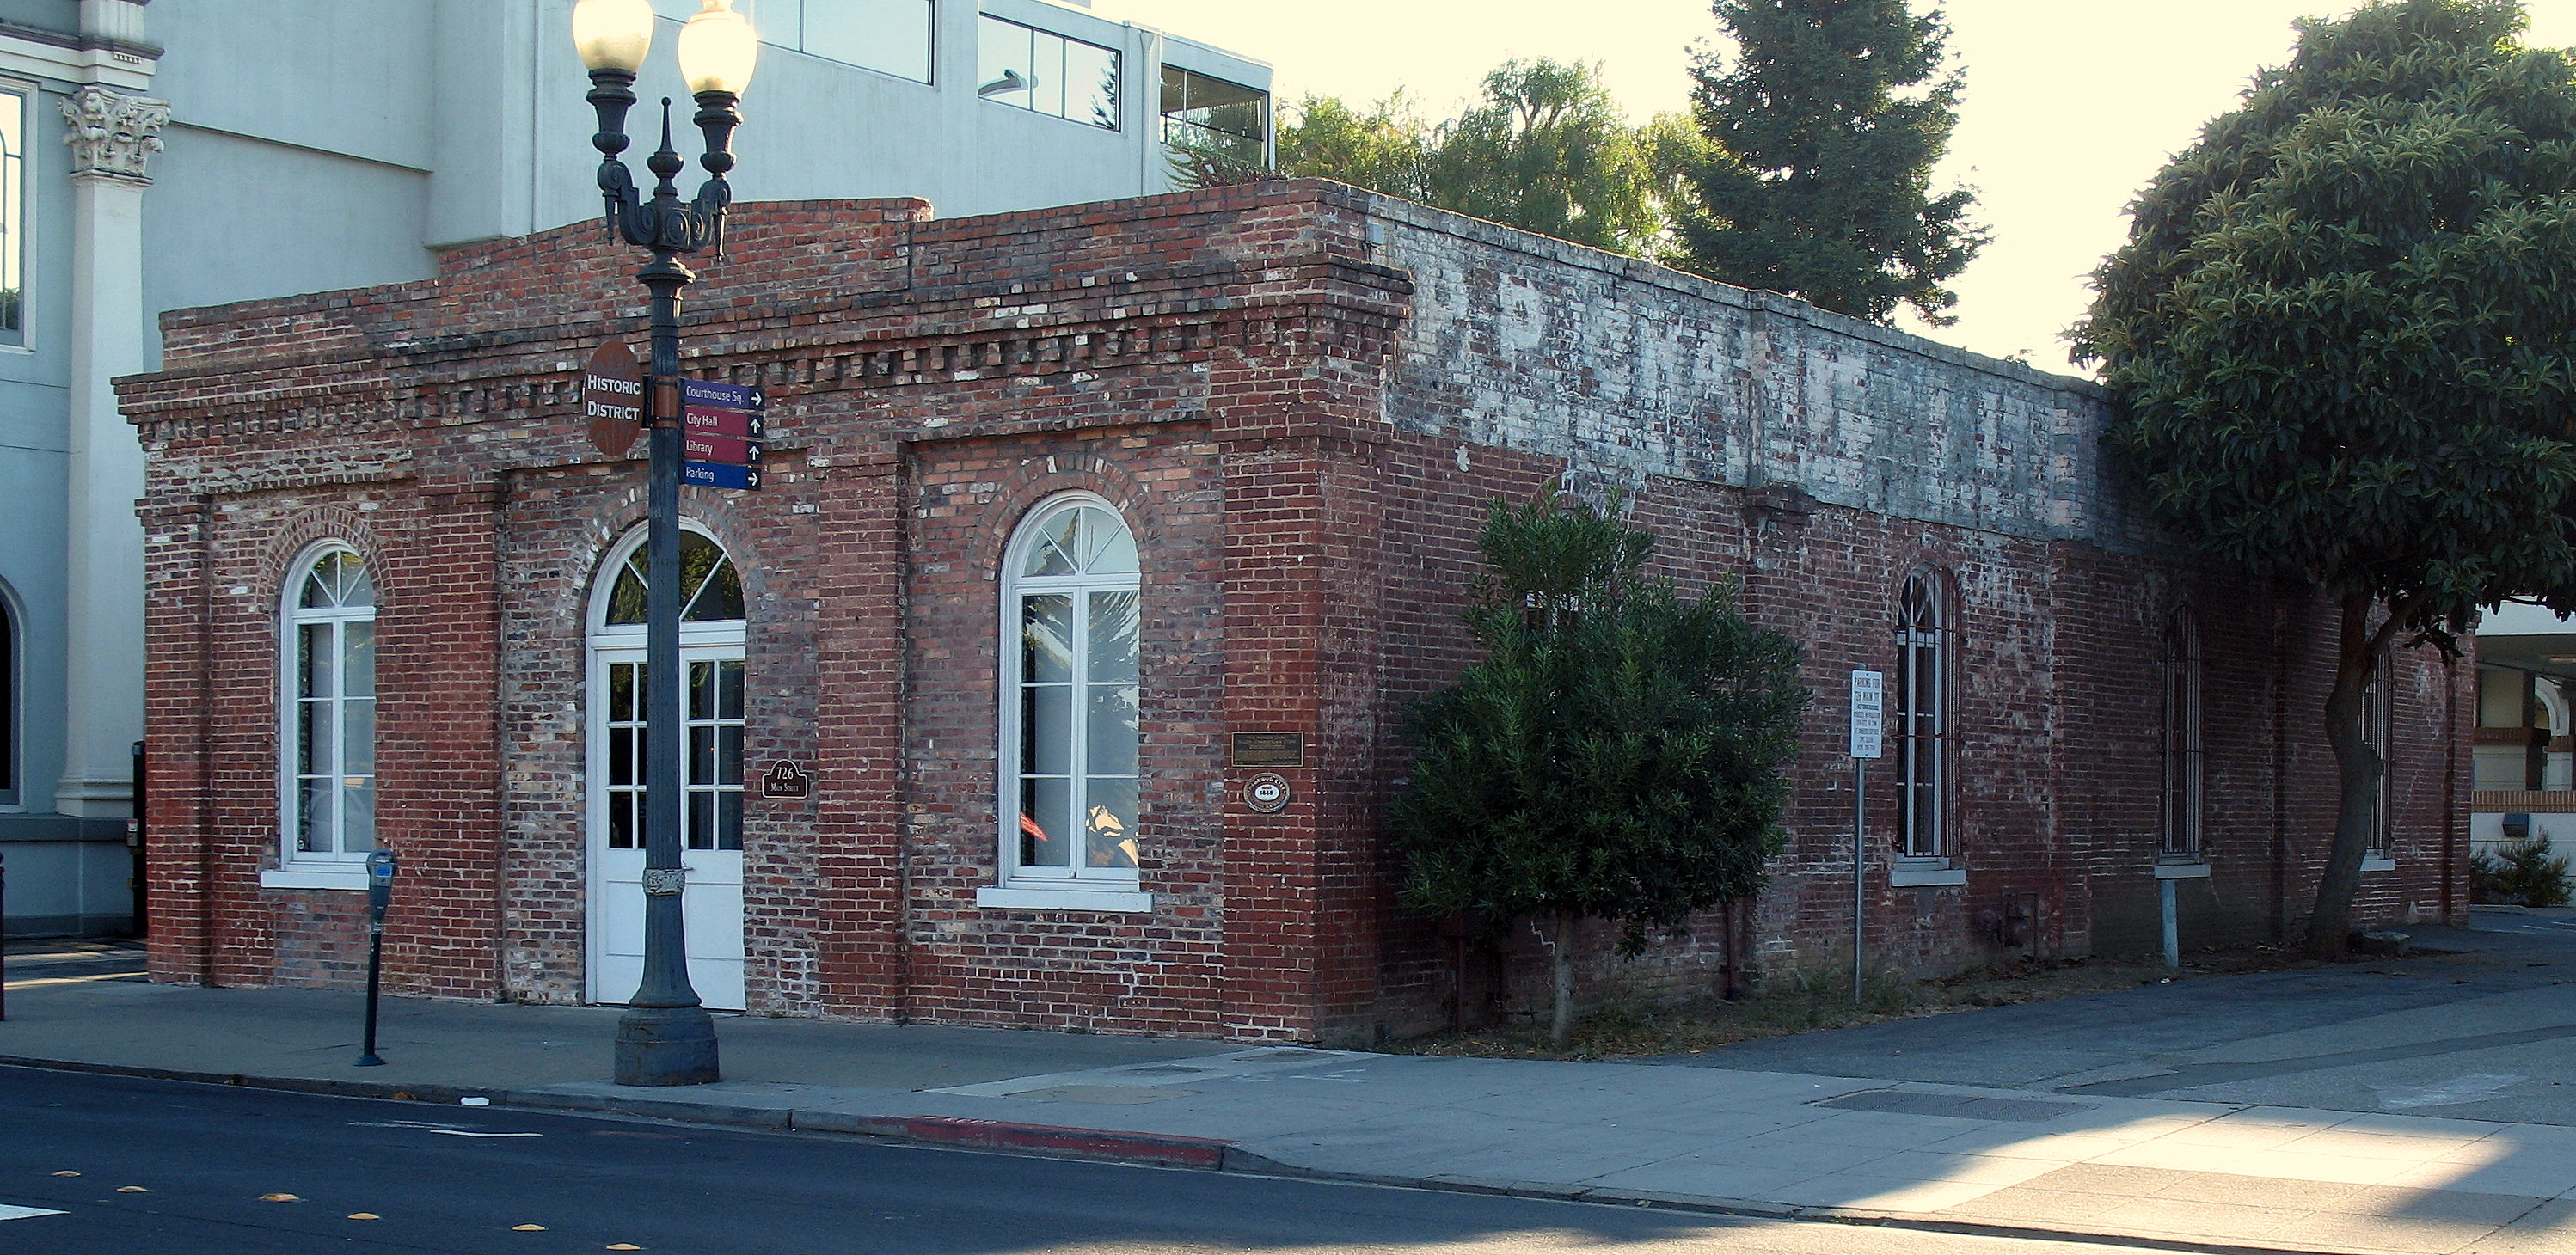 San Mateo Ca >> File:Diller-Chamberlain General Store-Quong Lee Laundry, 726 Main St., Redwood City, CA 9-5-2011 ...